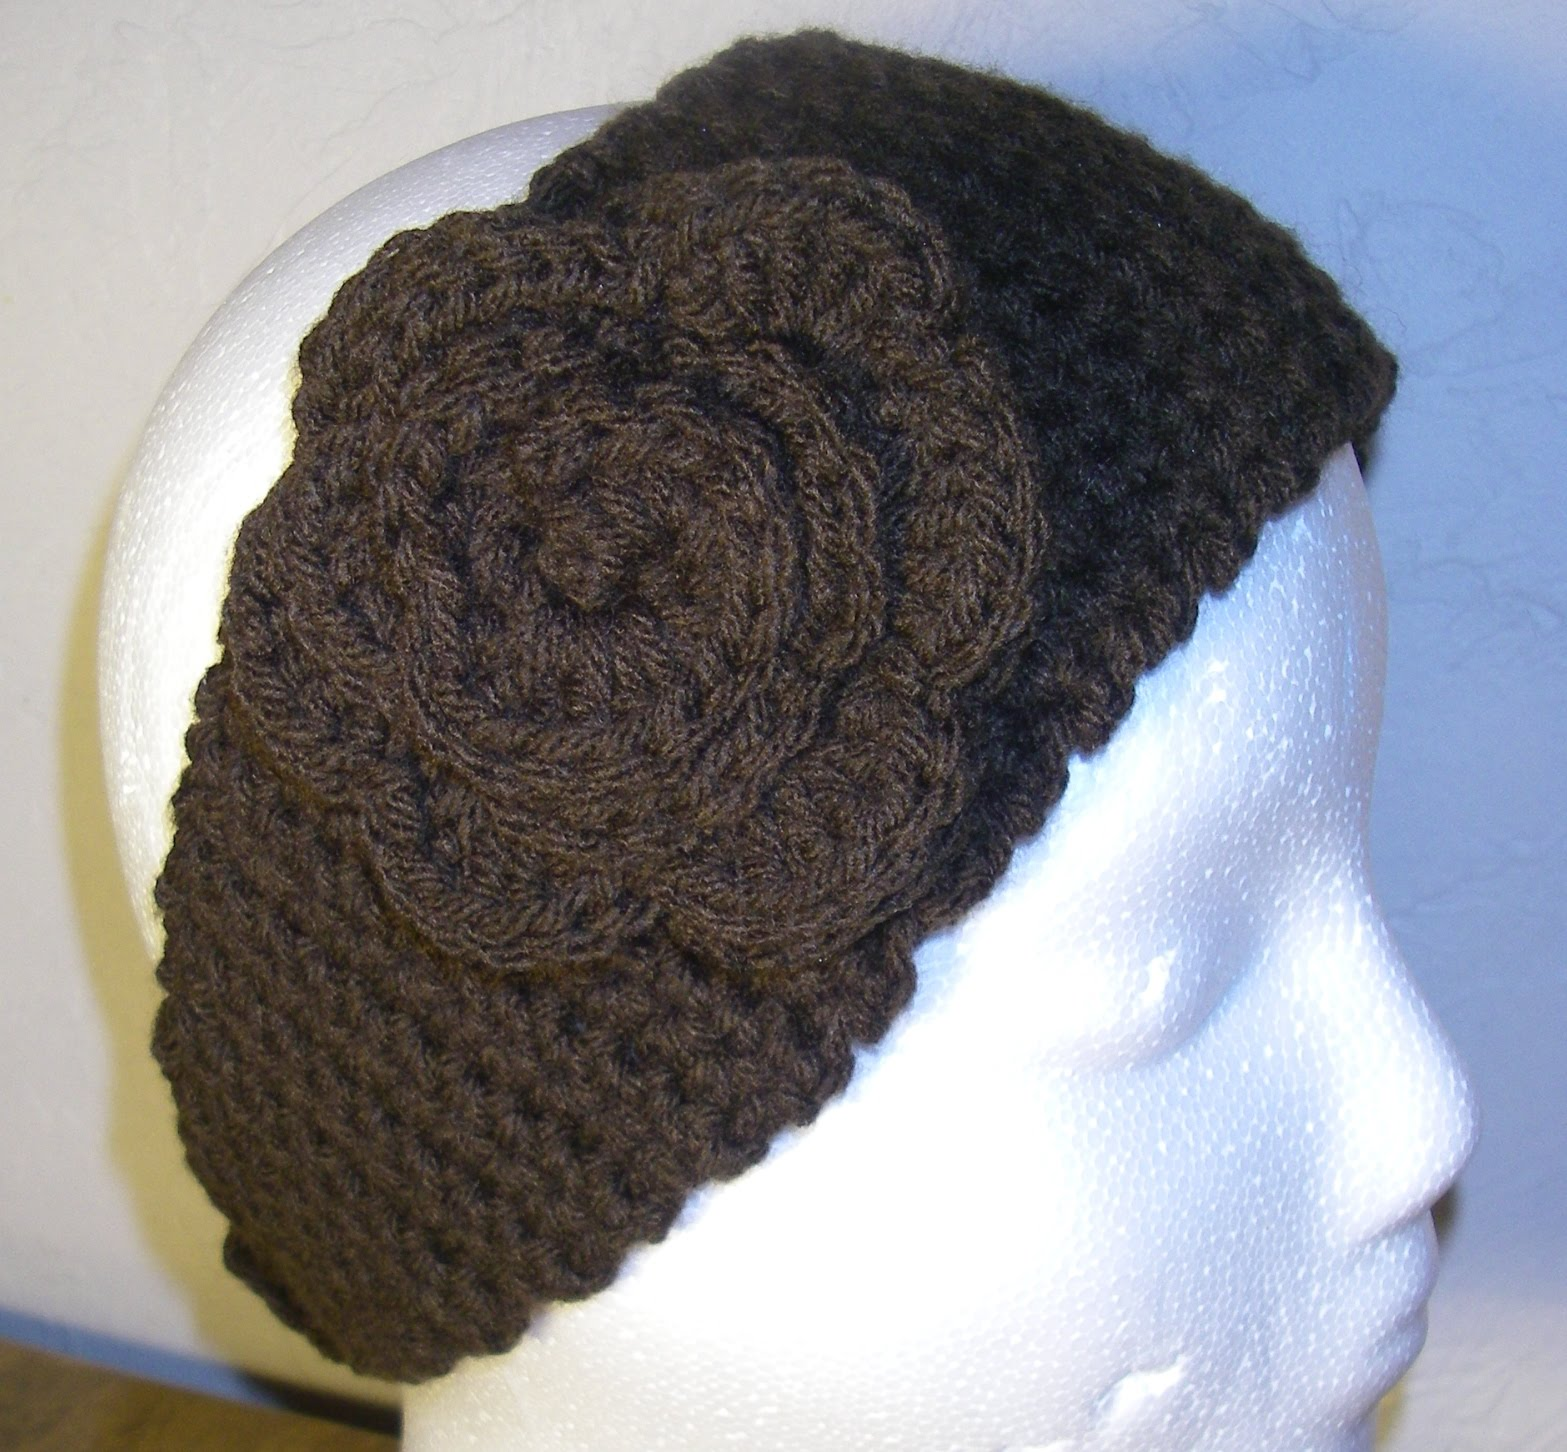 Crochet Ear Warmer : Row 25-30: sc in each stitch across, ch 1, turn (11 st)